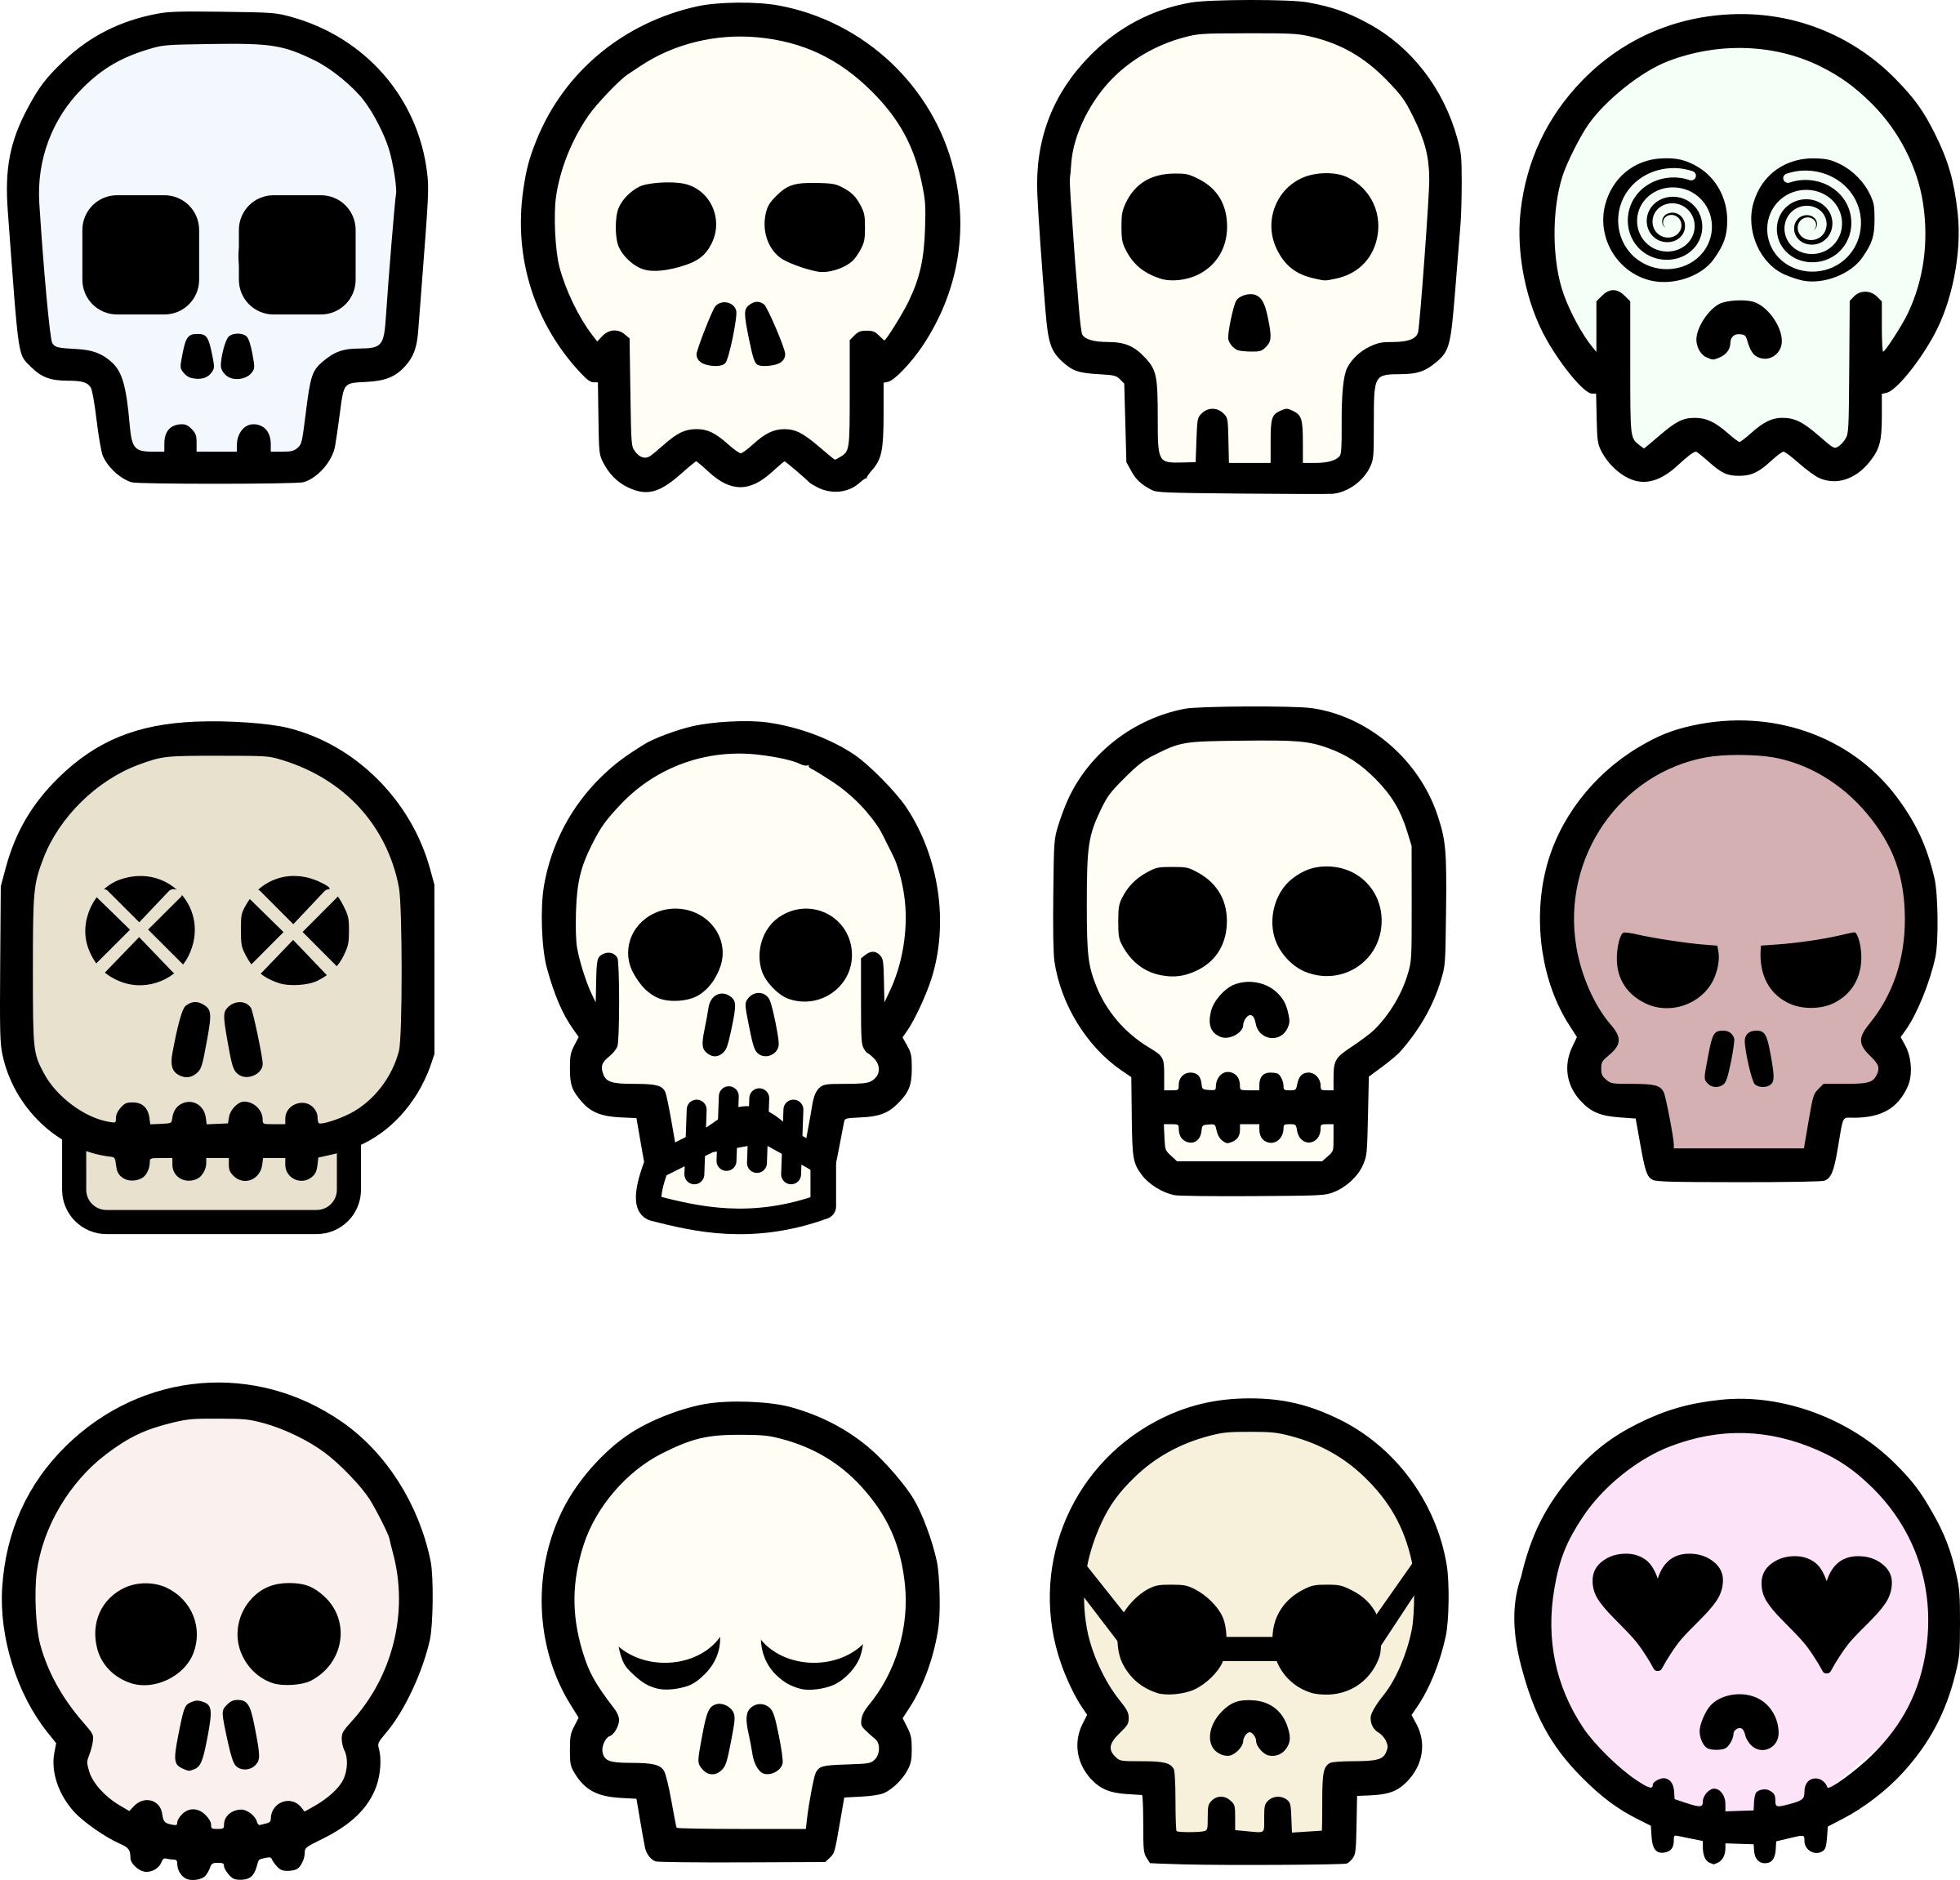 Free Photos u003e Vector Images u003e Skull Emoji Vector Clipart hdclipartall.com